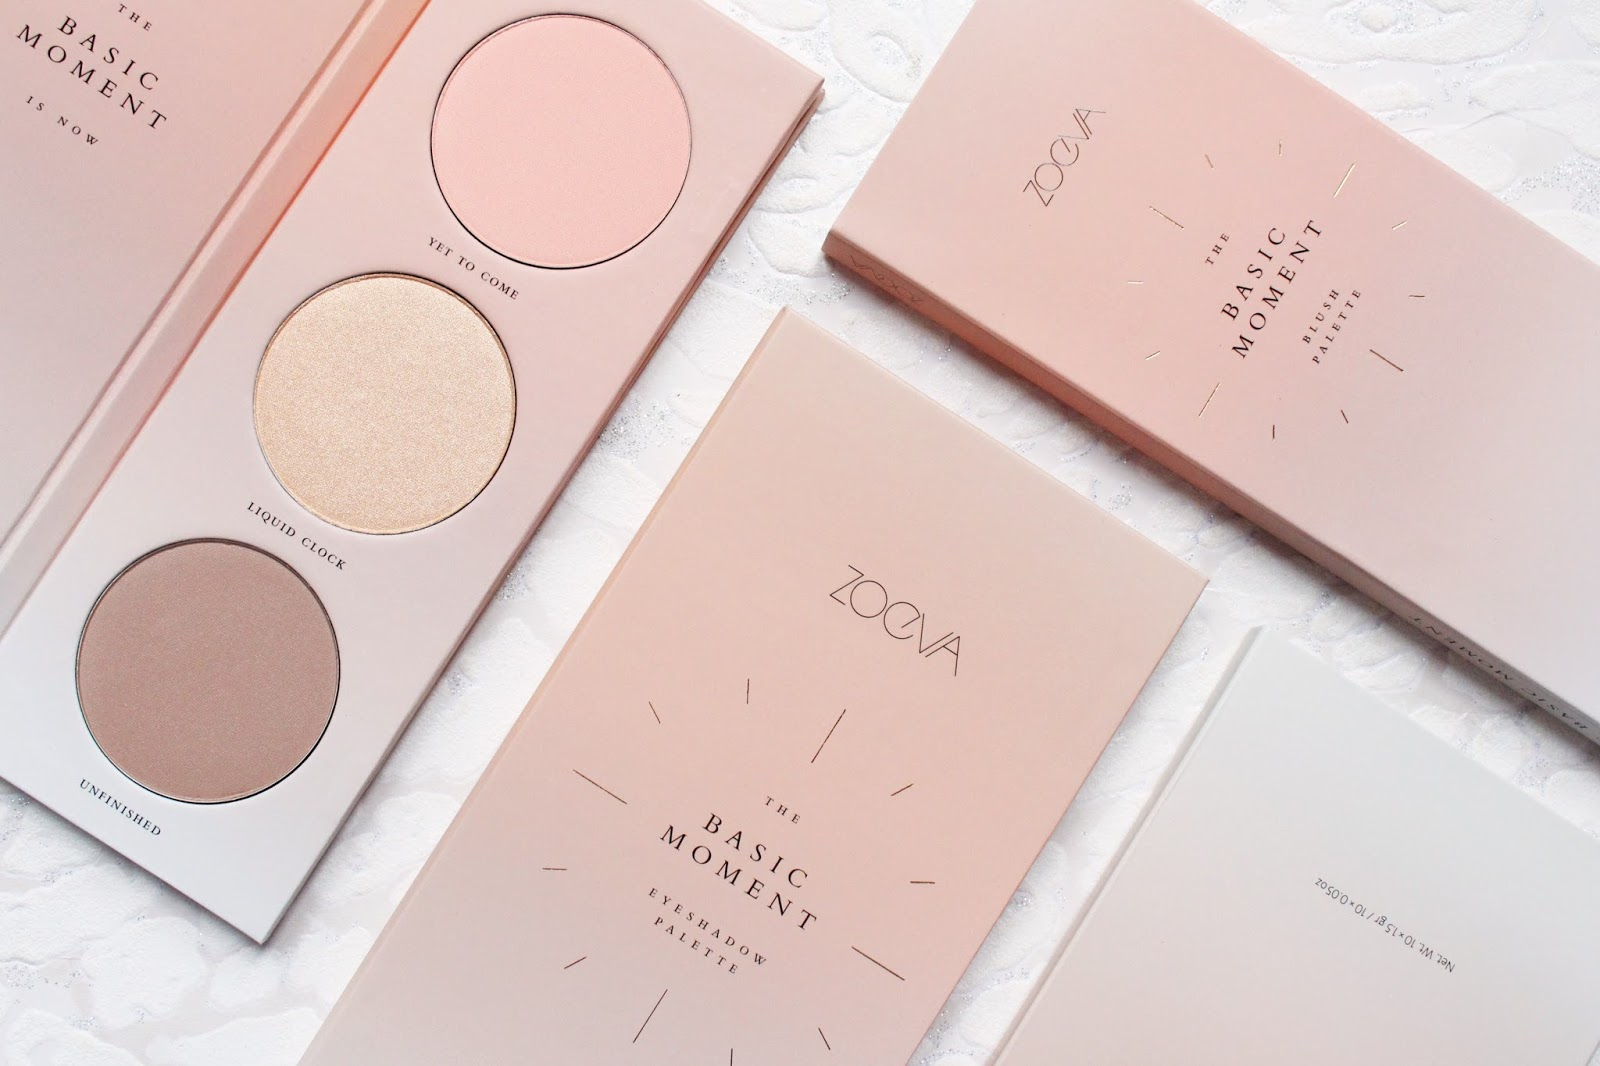 Zoeva Basic Moment Collection